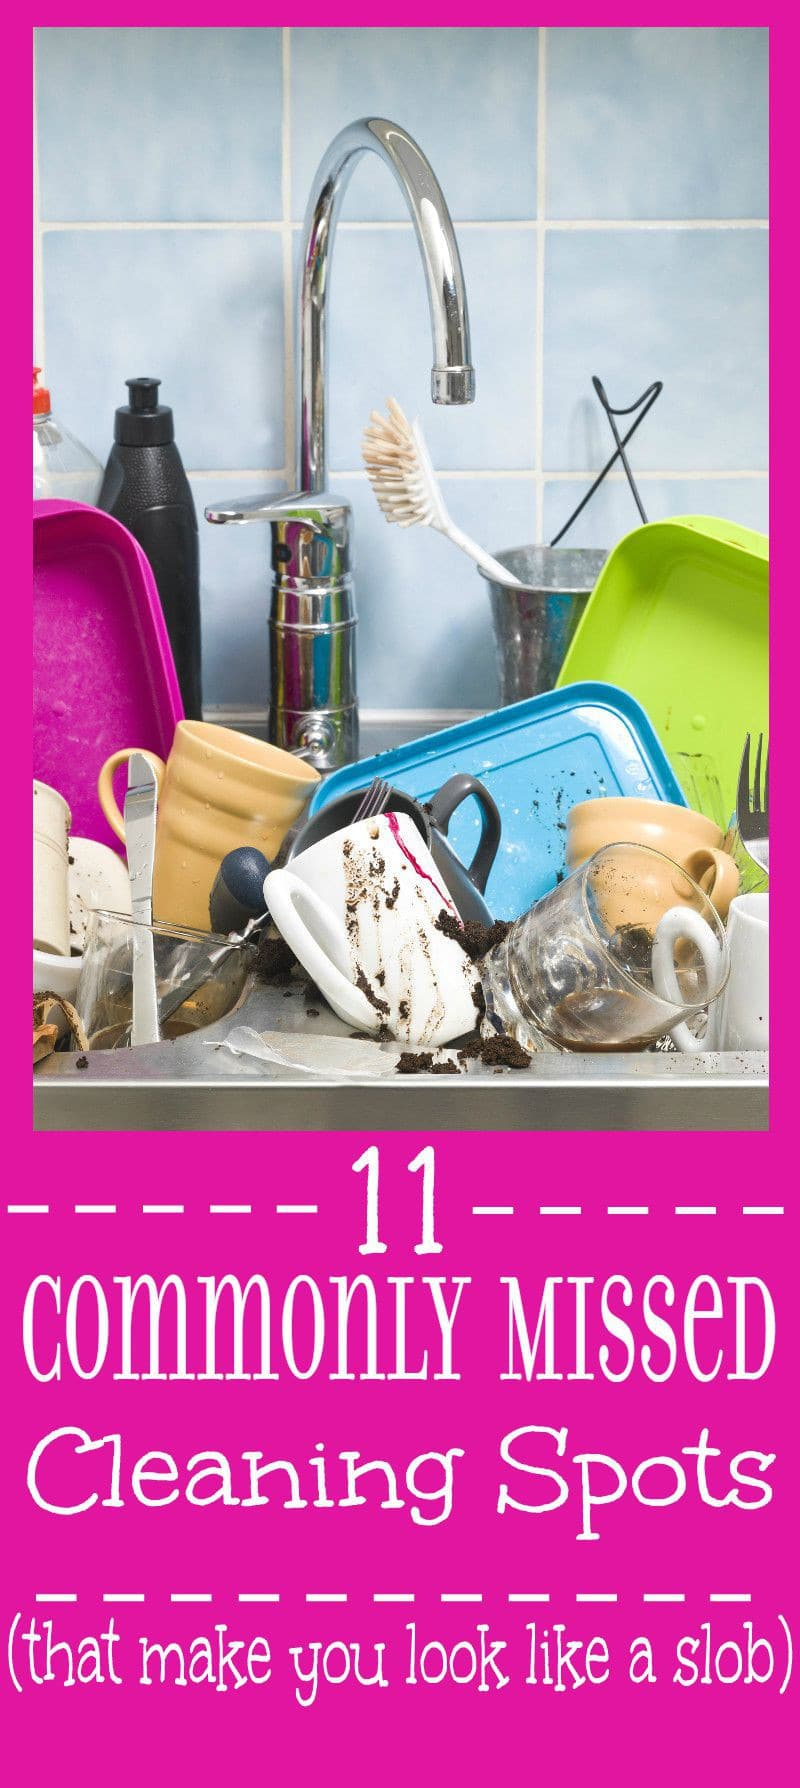 11 Commonly Missed Cleaning Spots